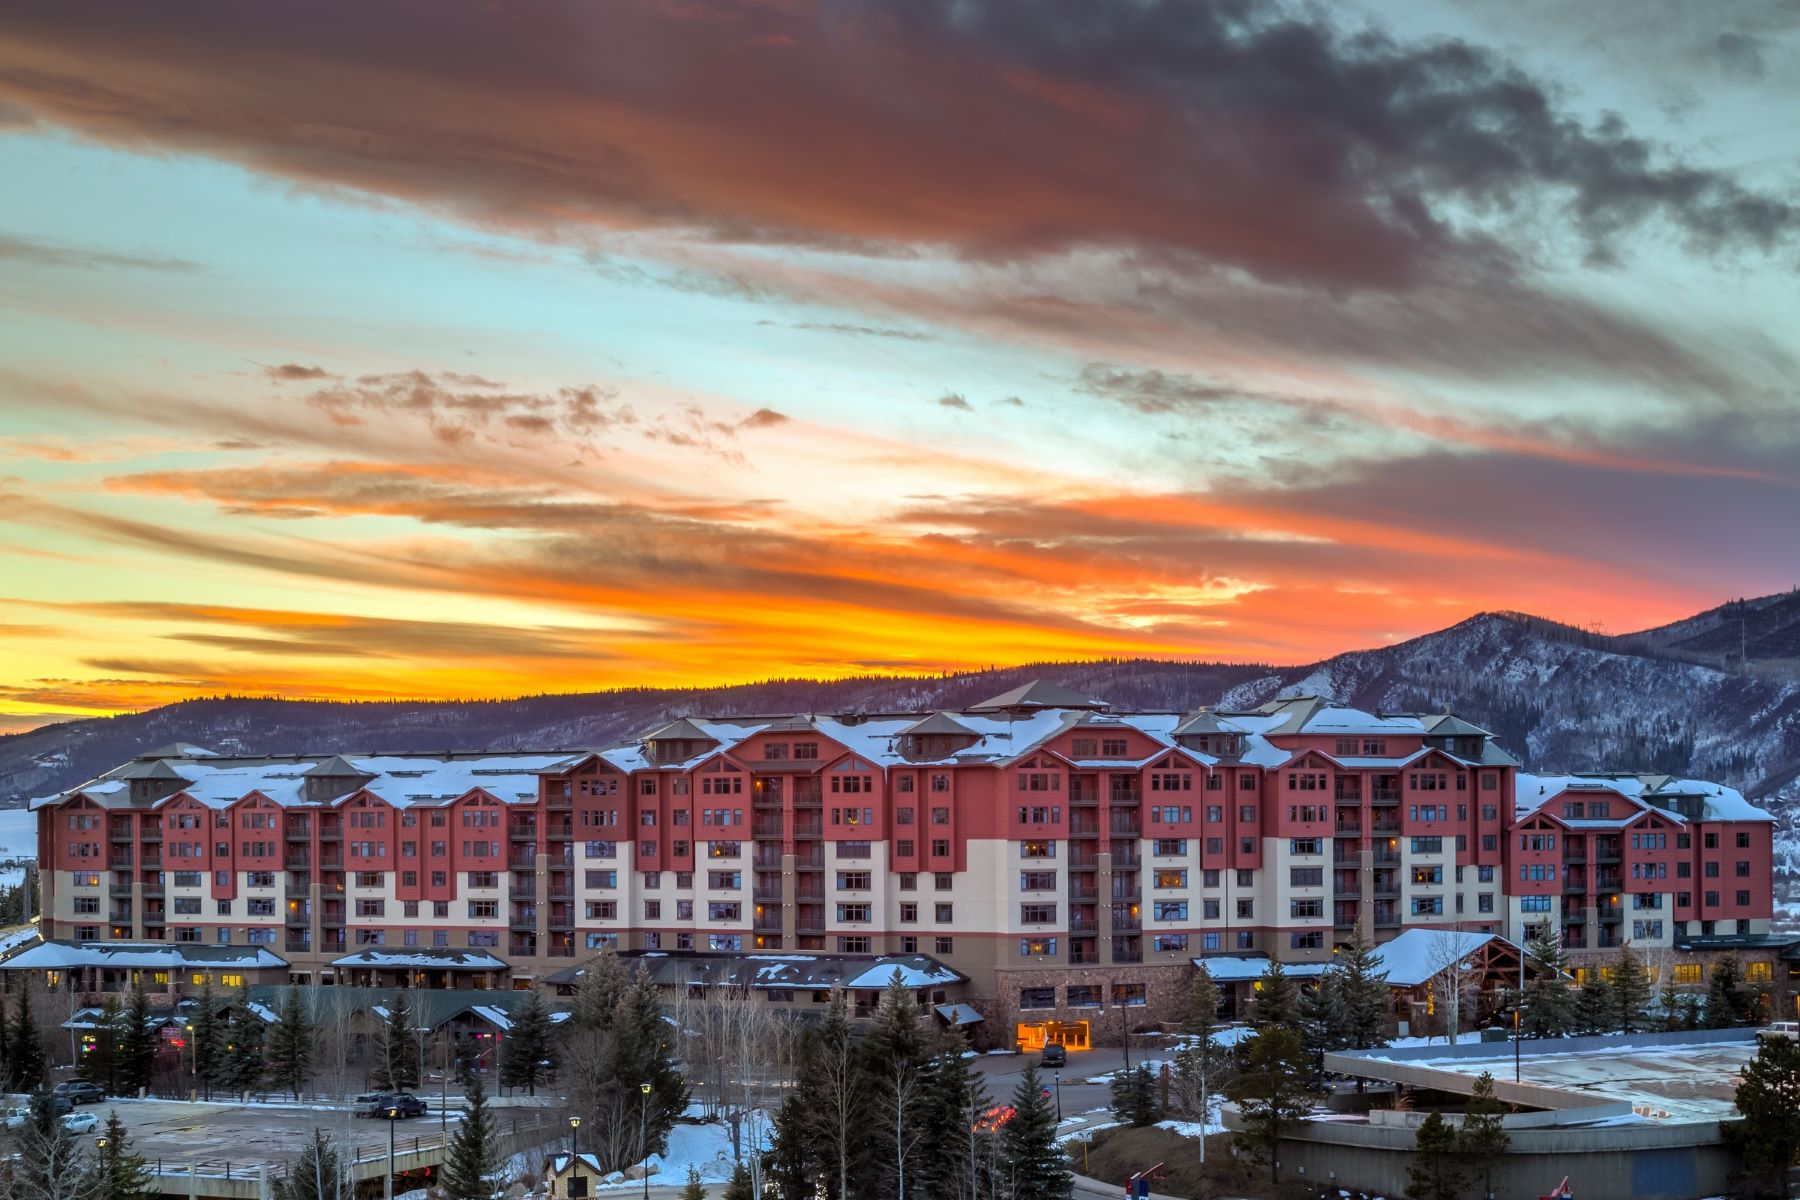 Fractional Ownership for Sale at Steamboat Grand Resort 2300 Mt. Werner Cir 706 QII Steamboat Springs, Colorado 80487 United States